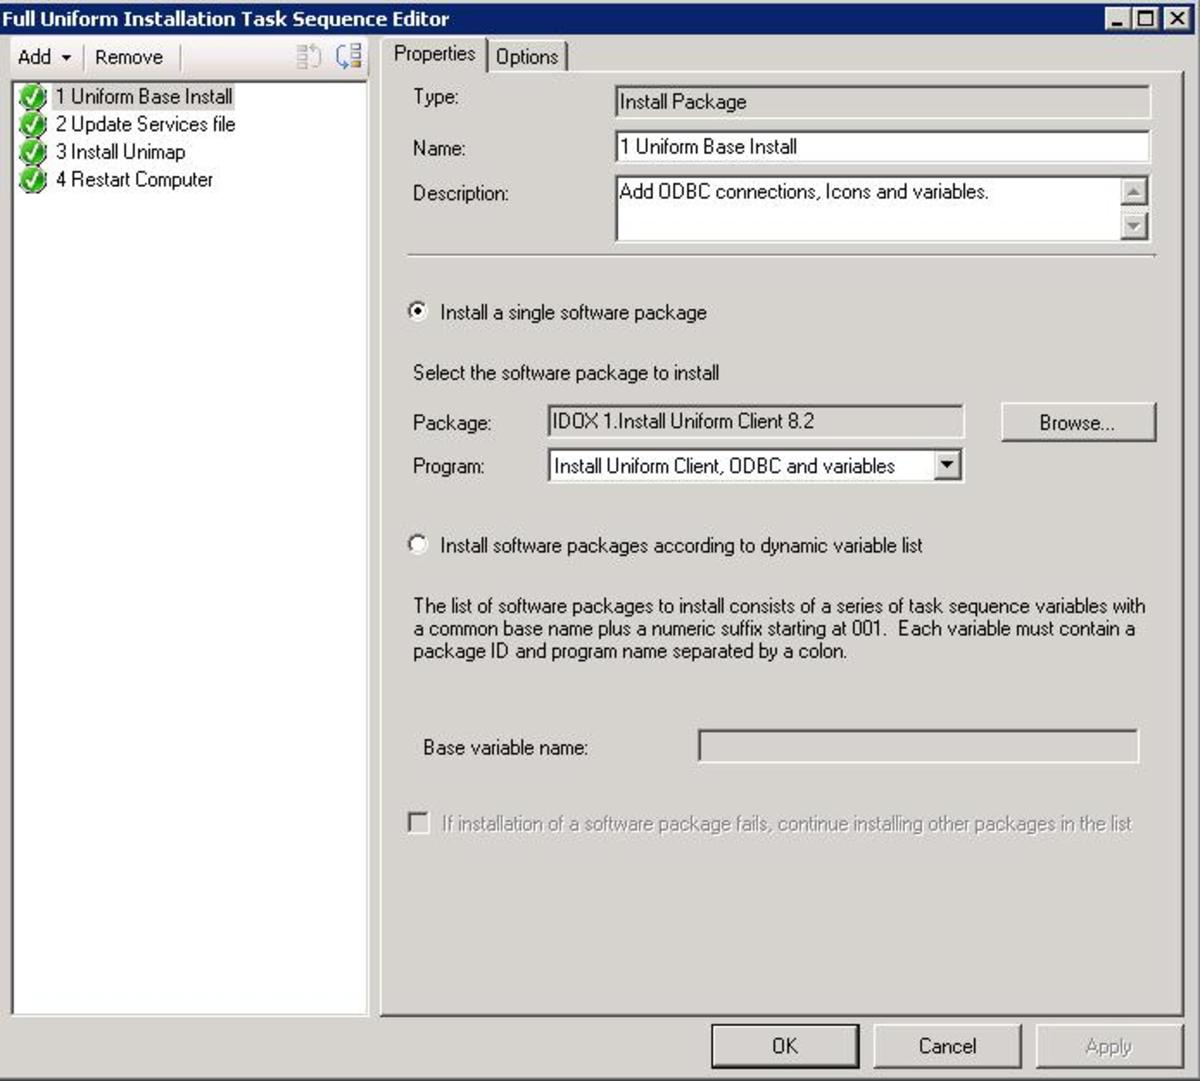 Deploy Packages in an Order Using SCCM 2012 | HubPages